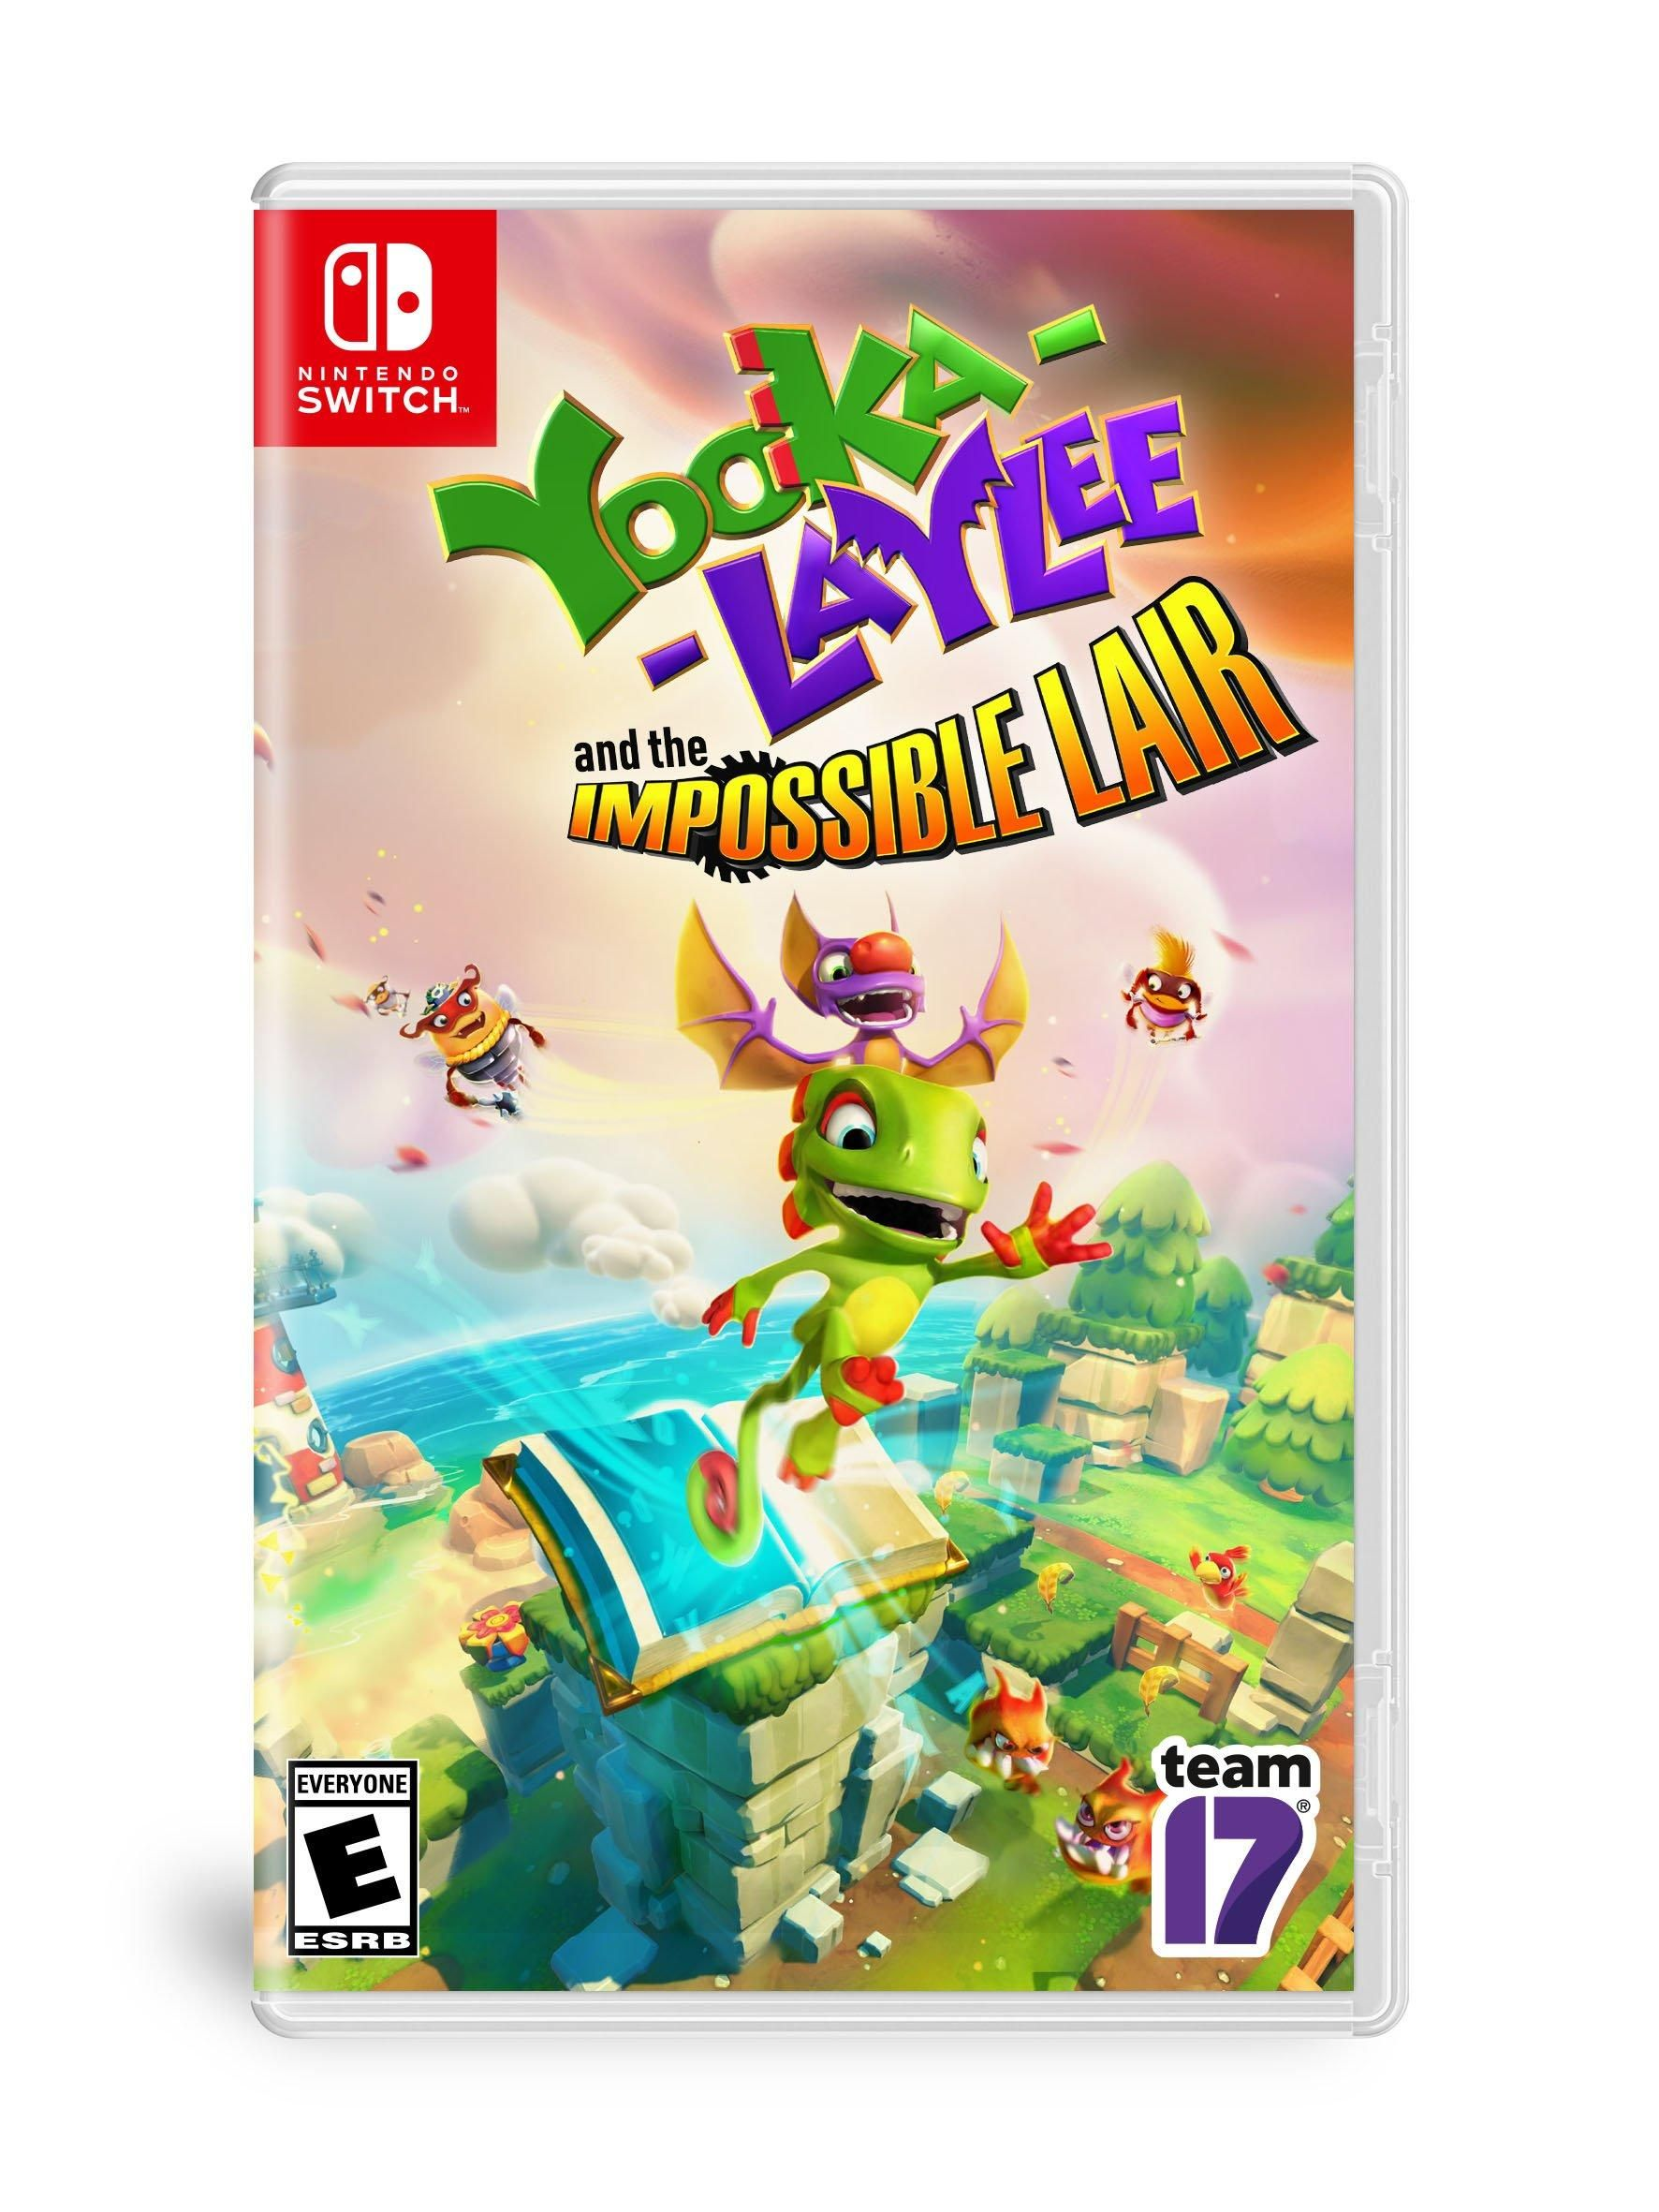 YookaLaylee and the Impossible Lair Nintendo Switch